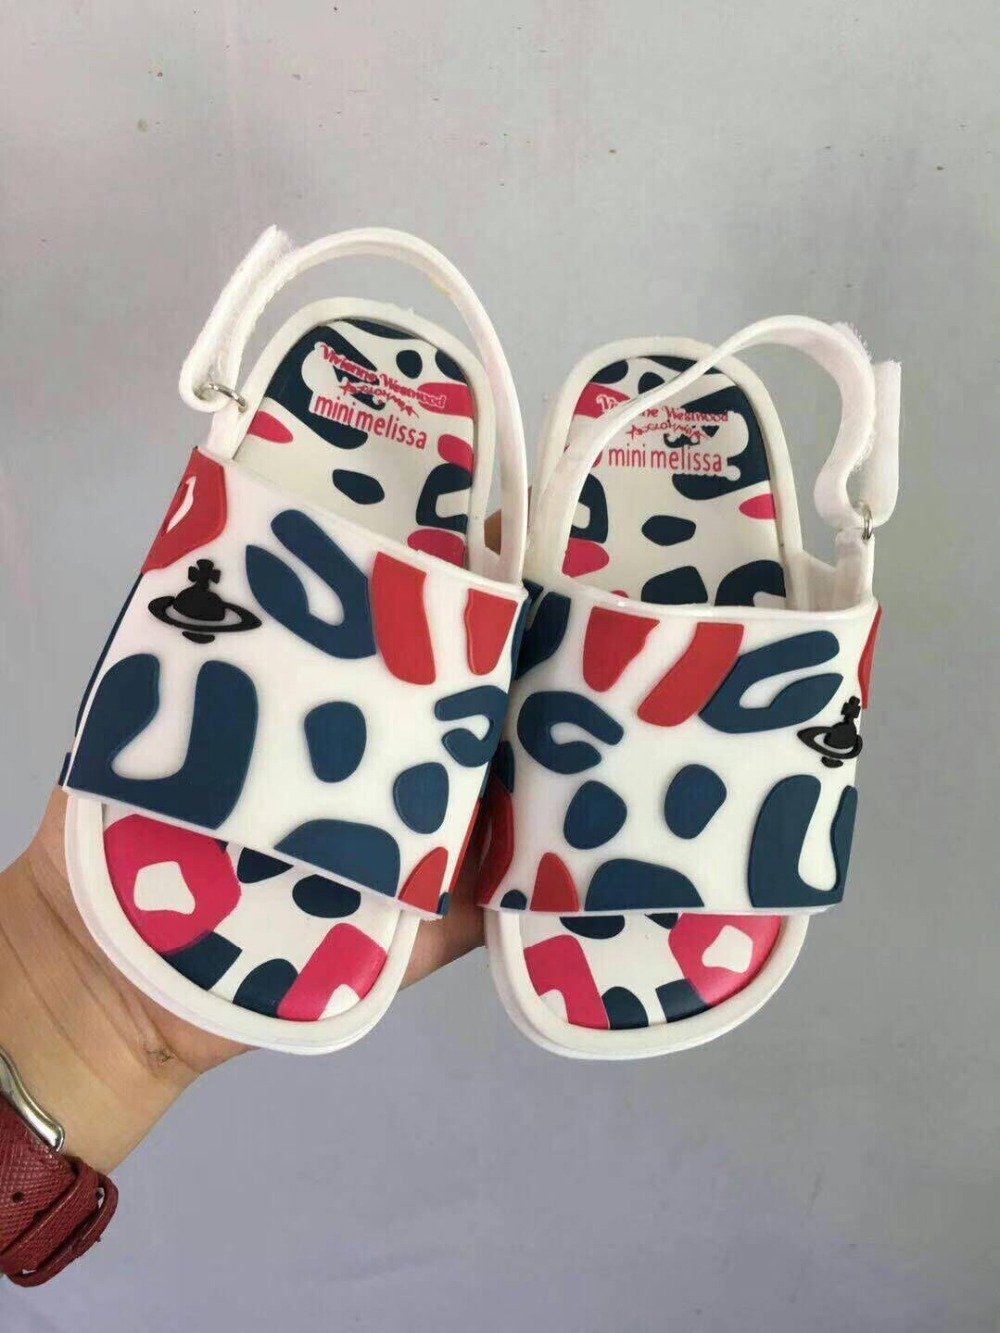 2018 new mini melissa sandals shoes cartoon kids shoes 3 color Girls boys casual cute beach shoes Childrens Sandals soft Zapato